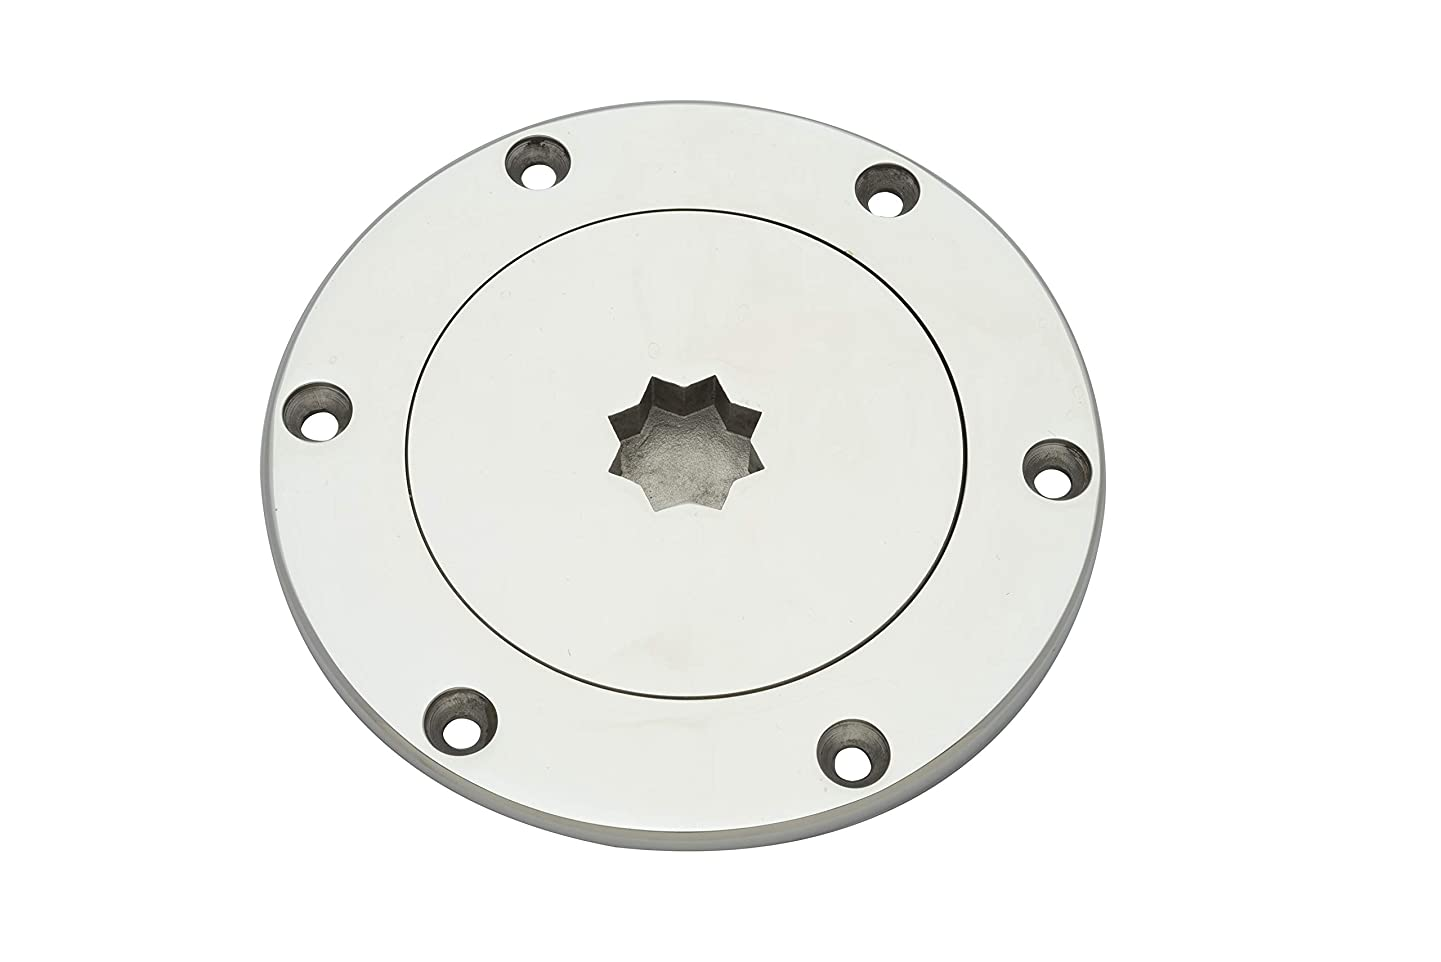 Buchan Marine Deck Plate Stainless Steel with Star Pattern